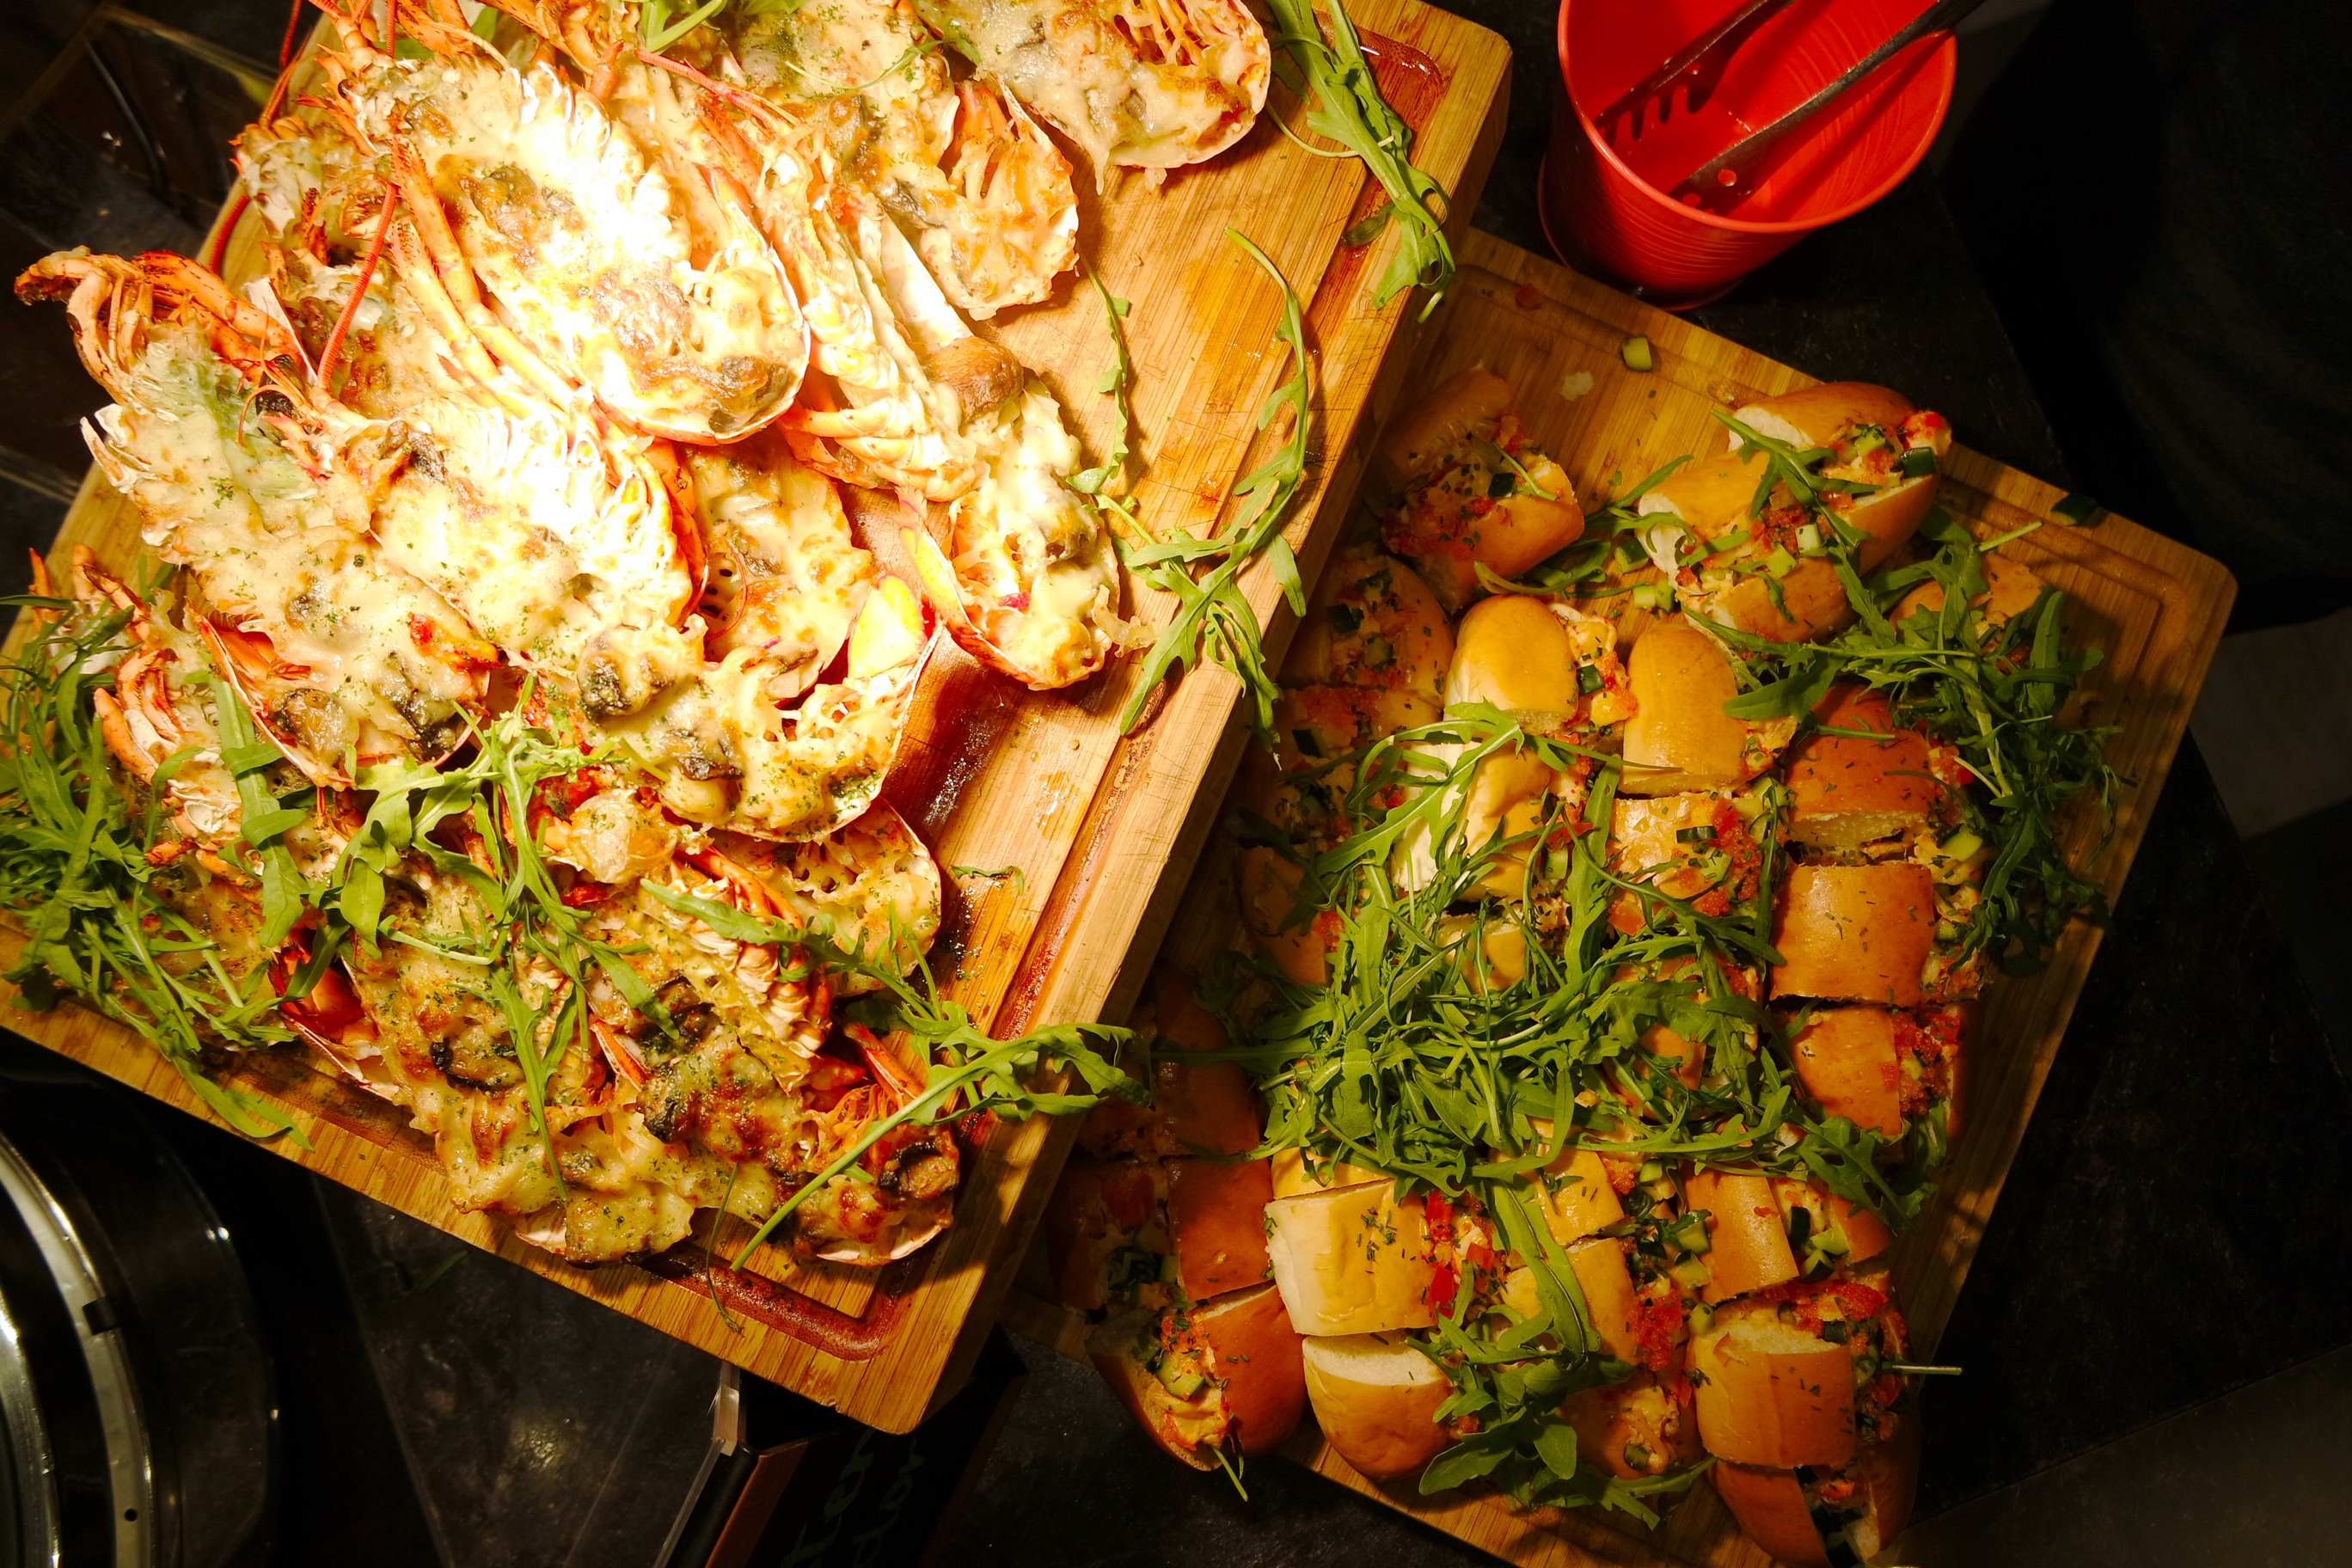 Lobster's Buffet on Wednesday - Baked Cheese Lobster & Lobster Roll